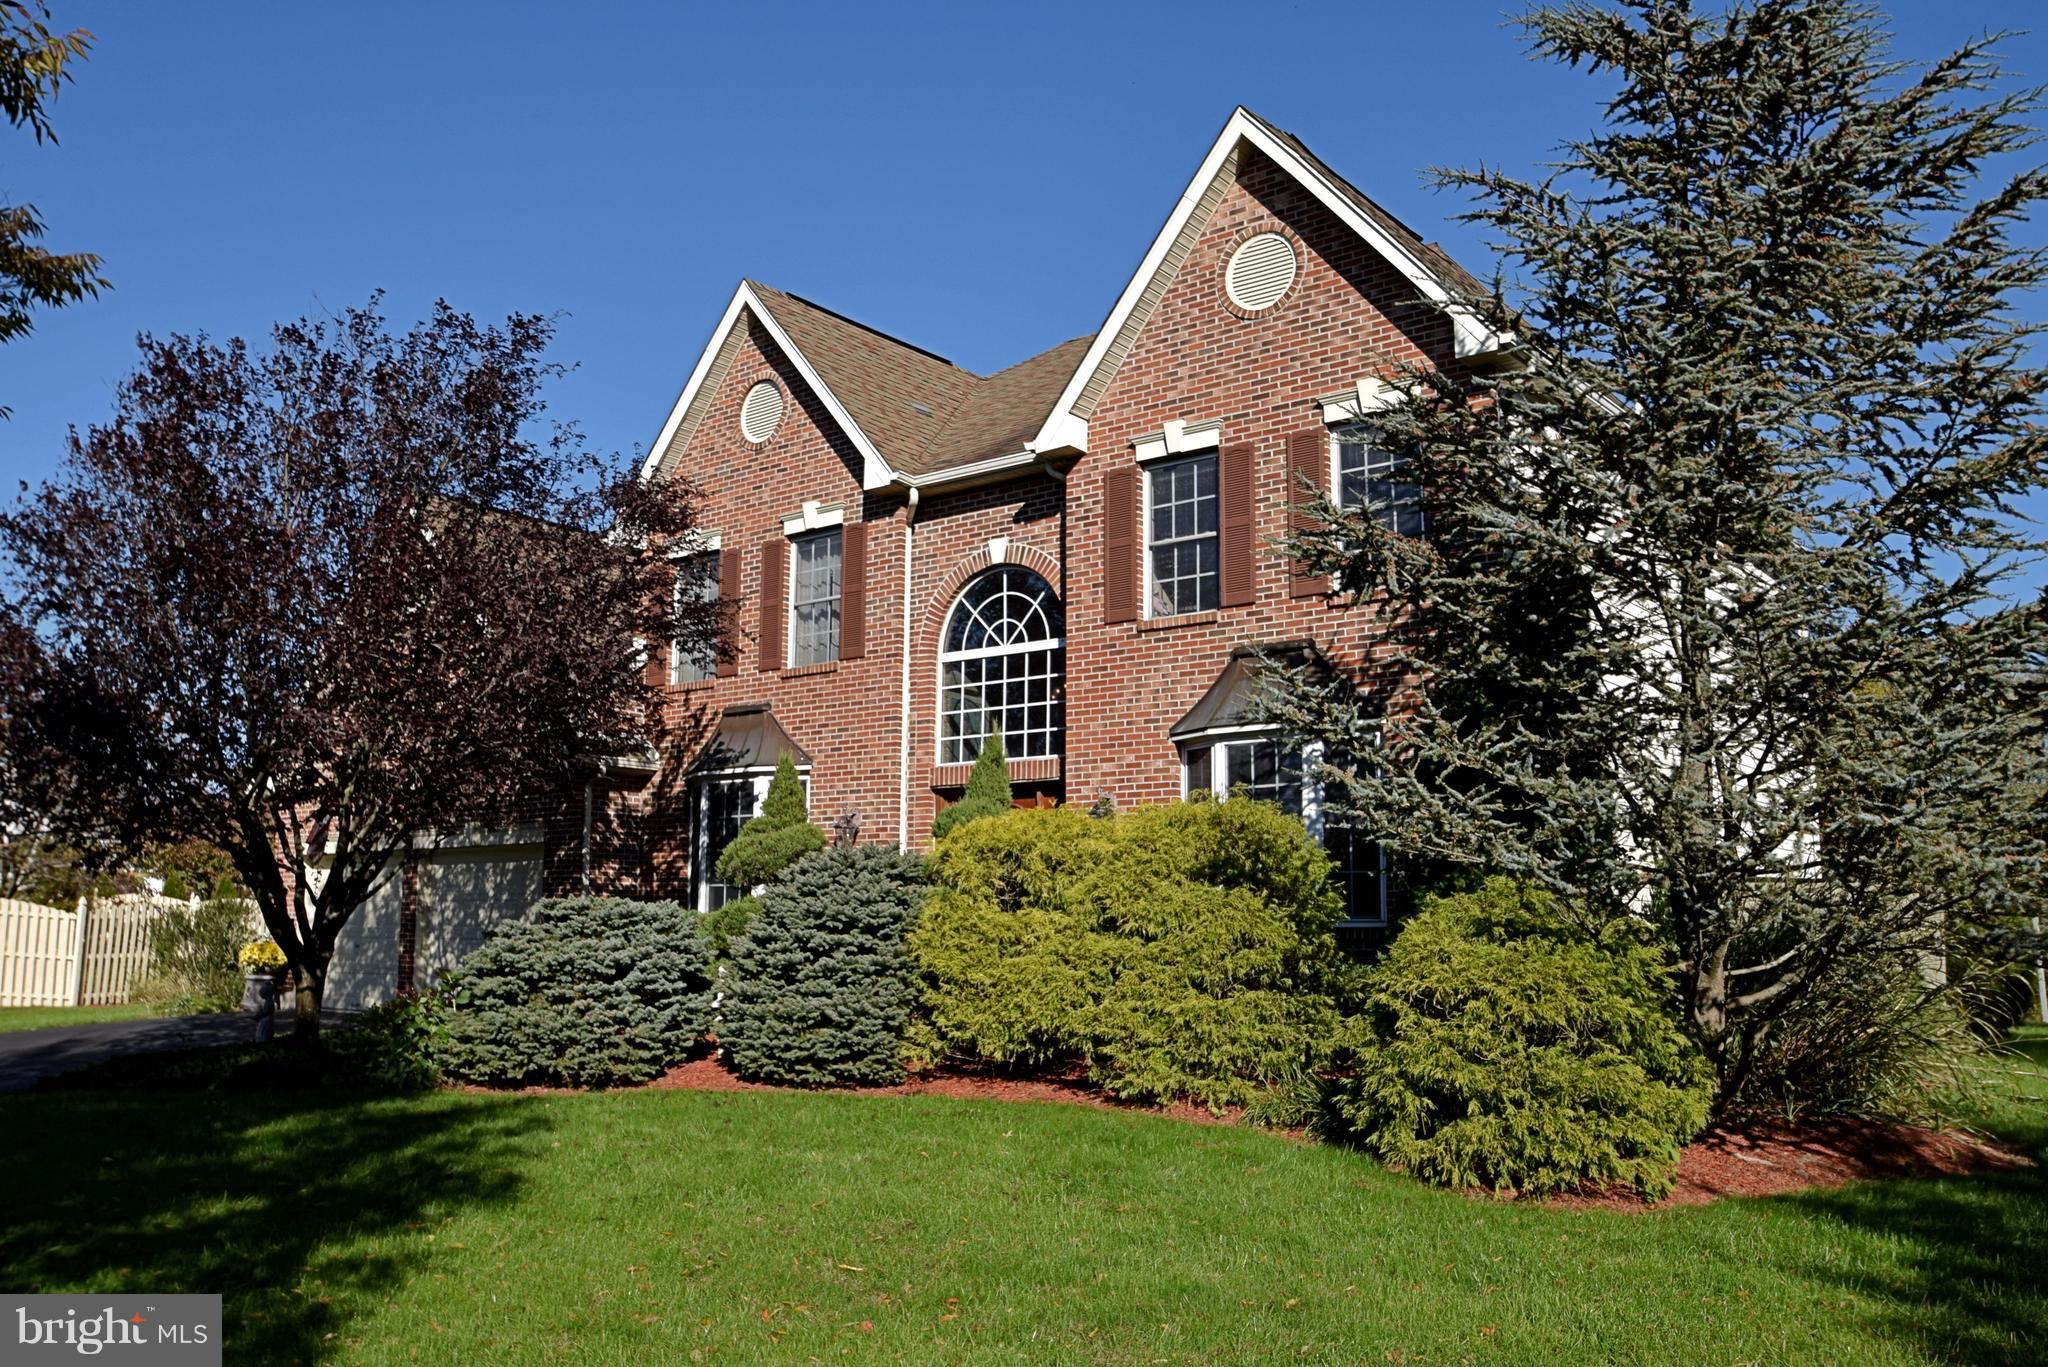 206 YALE COURT, SOUDERTON, PA 18964